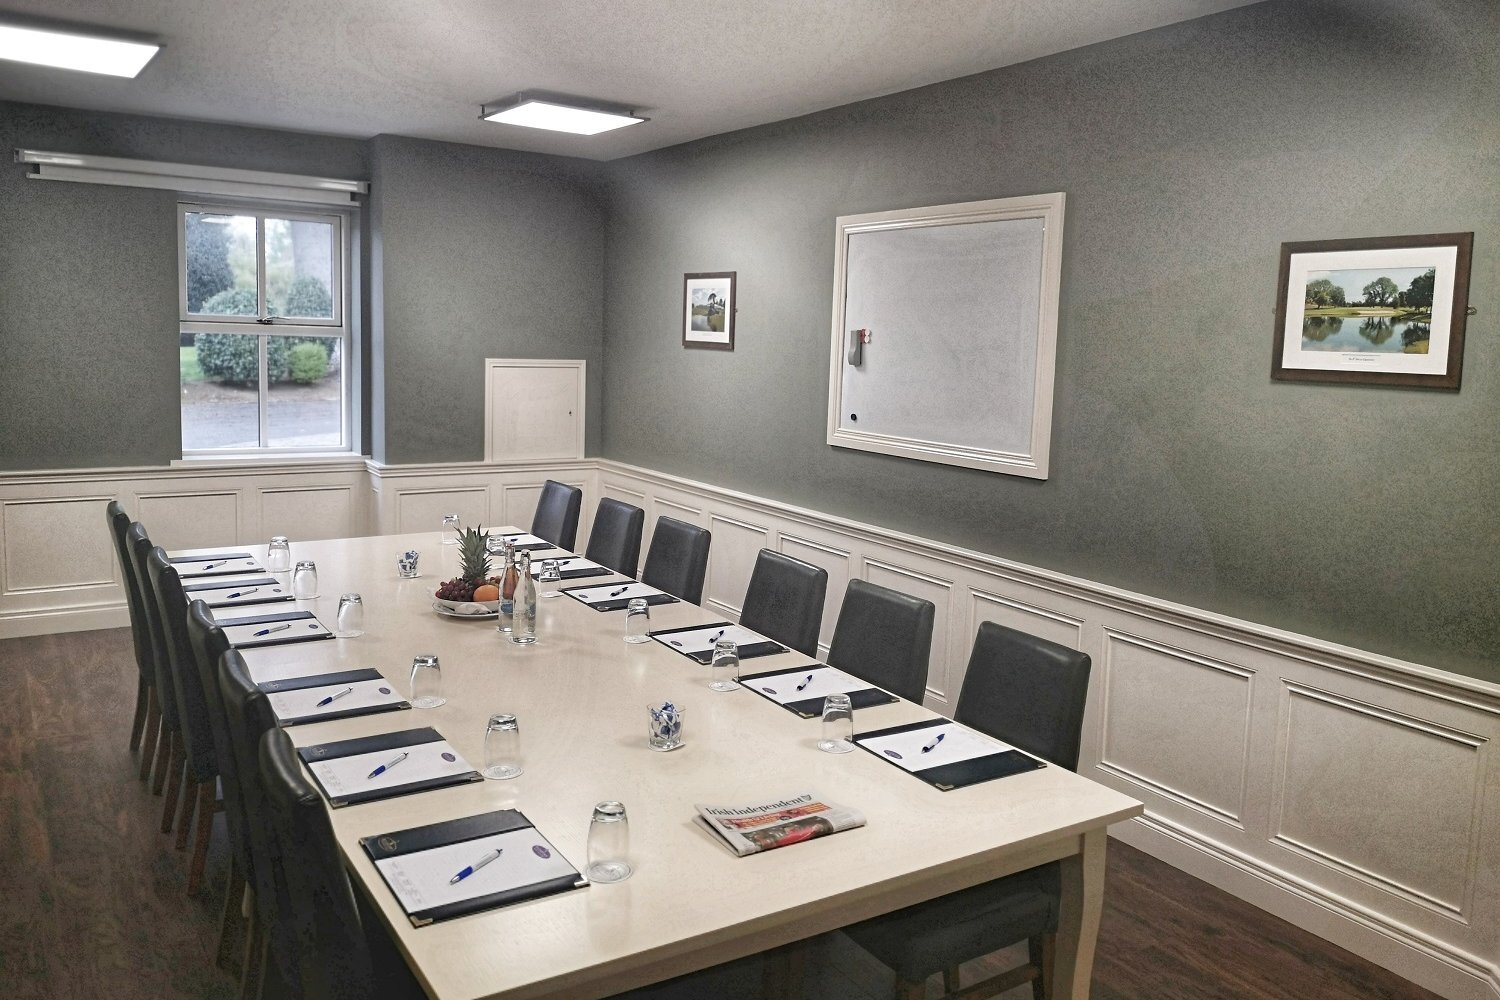 meeting-rooms-for-businesses-near-dublin-airport.jpg